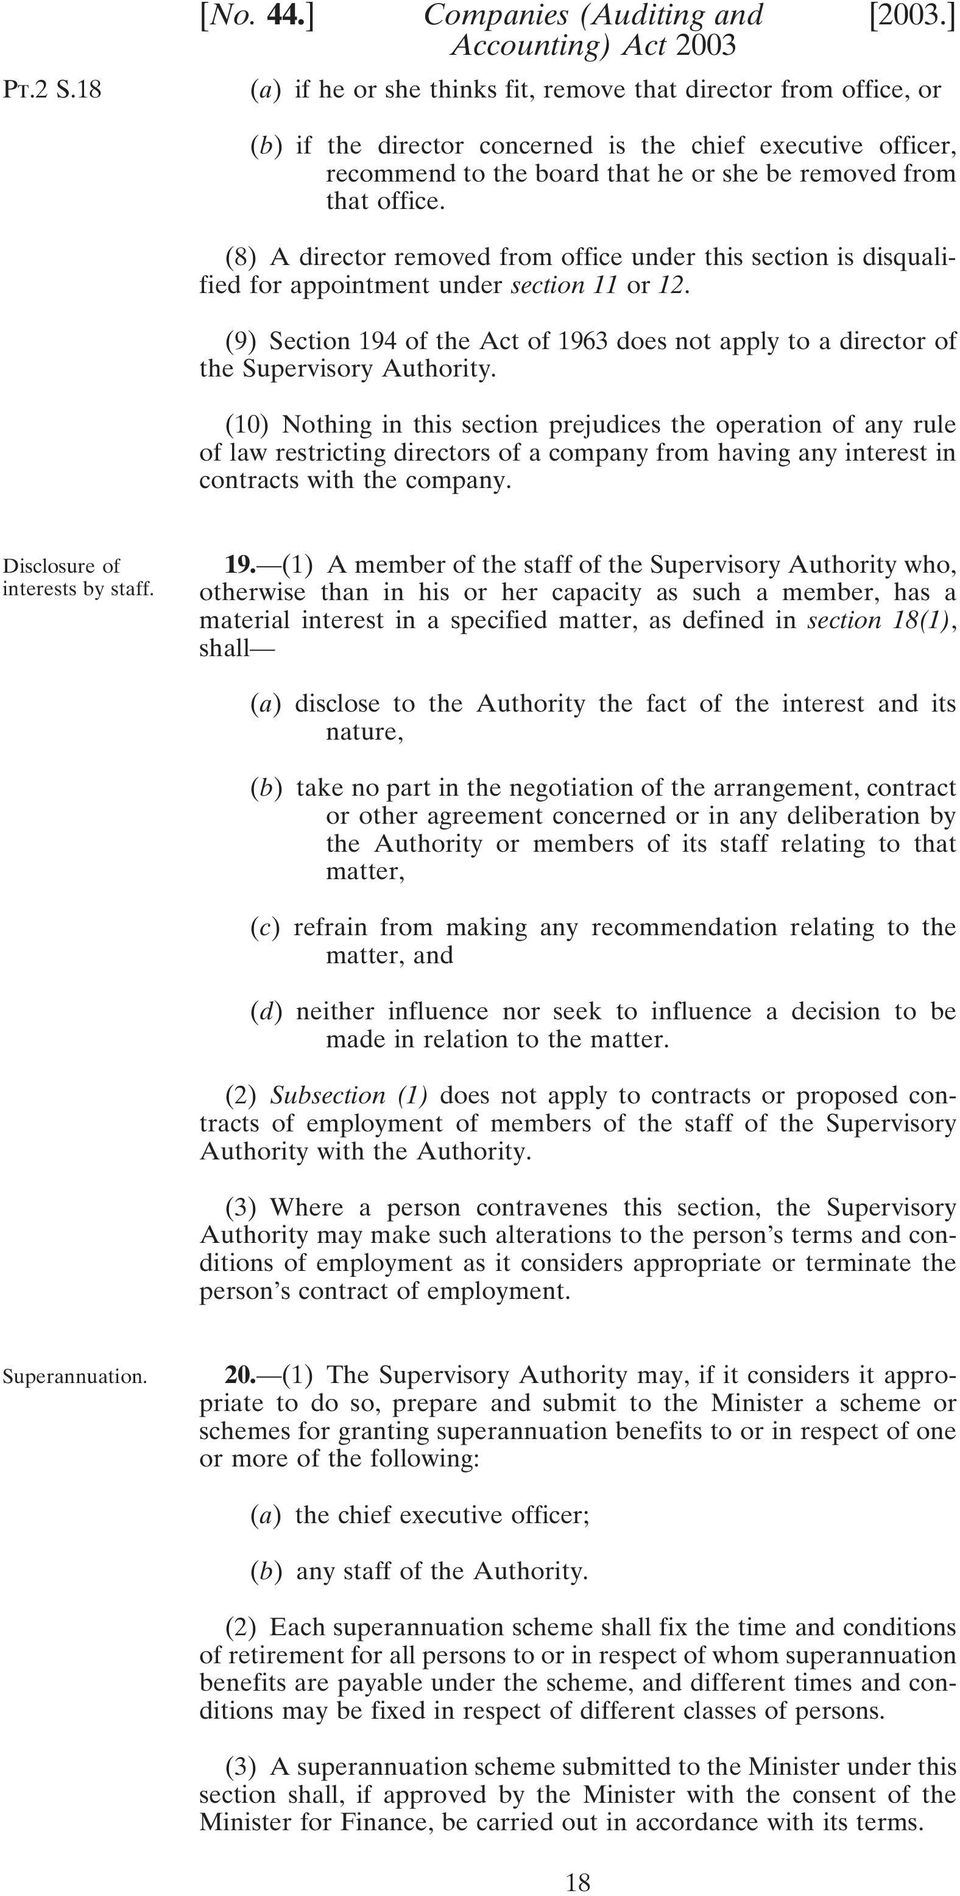 (8) A director removed from office under this section is disqualified for appointment under section 11 or 12.